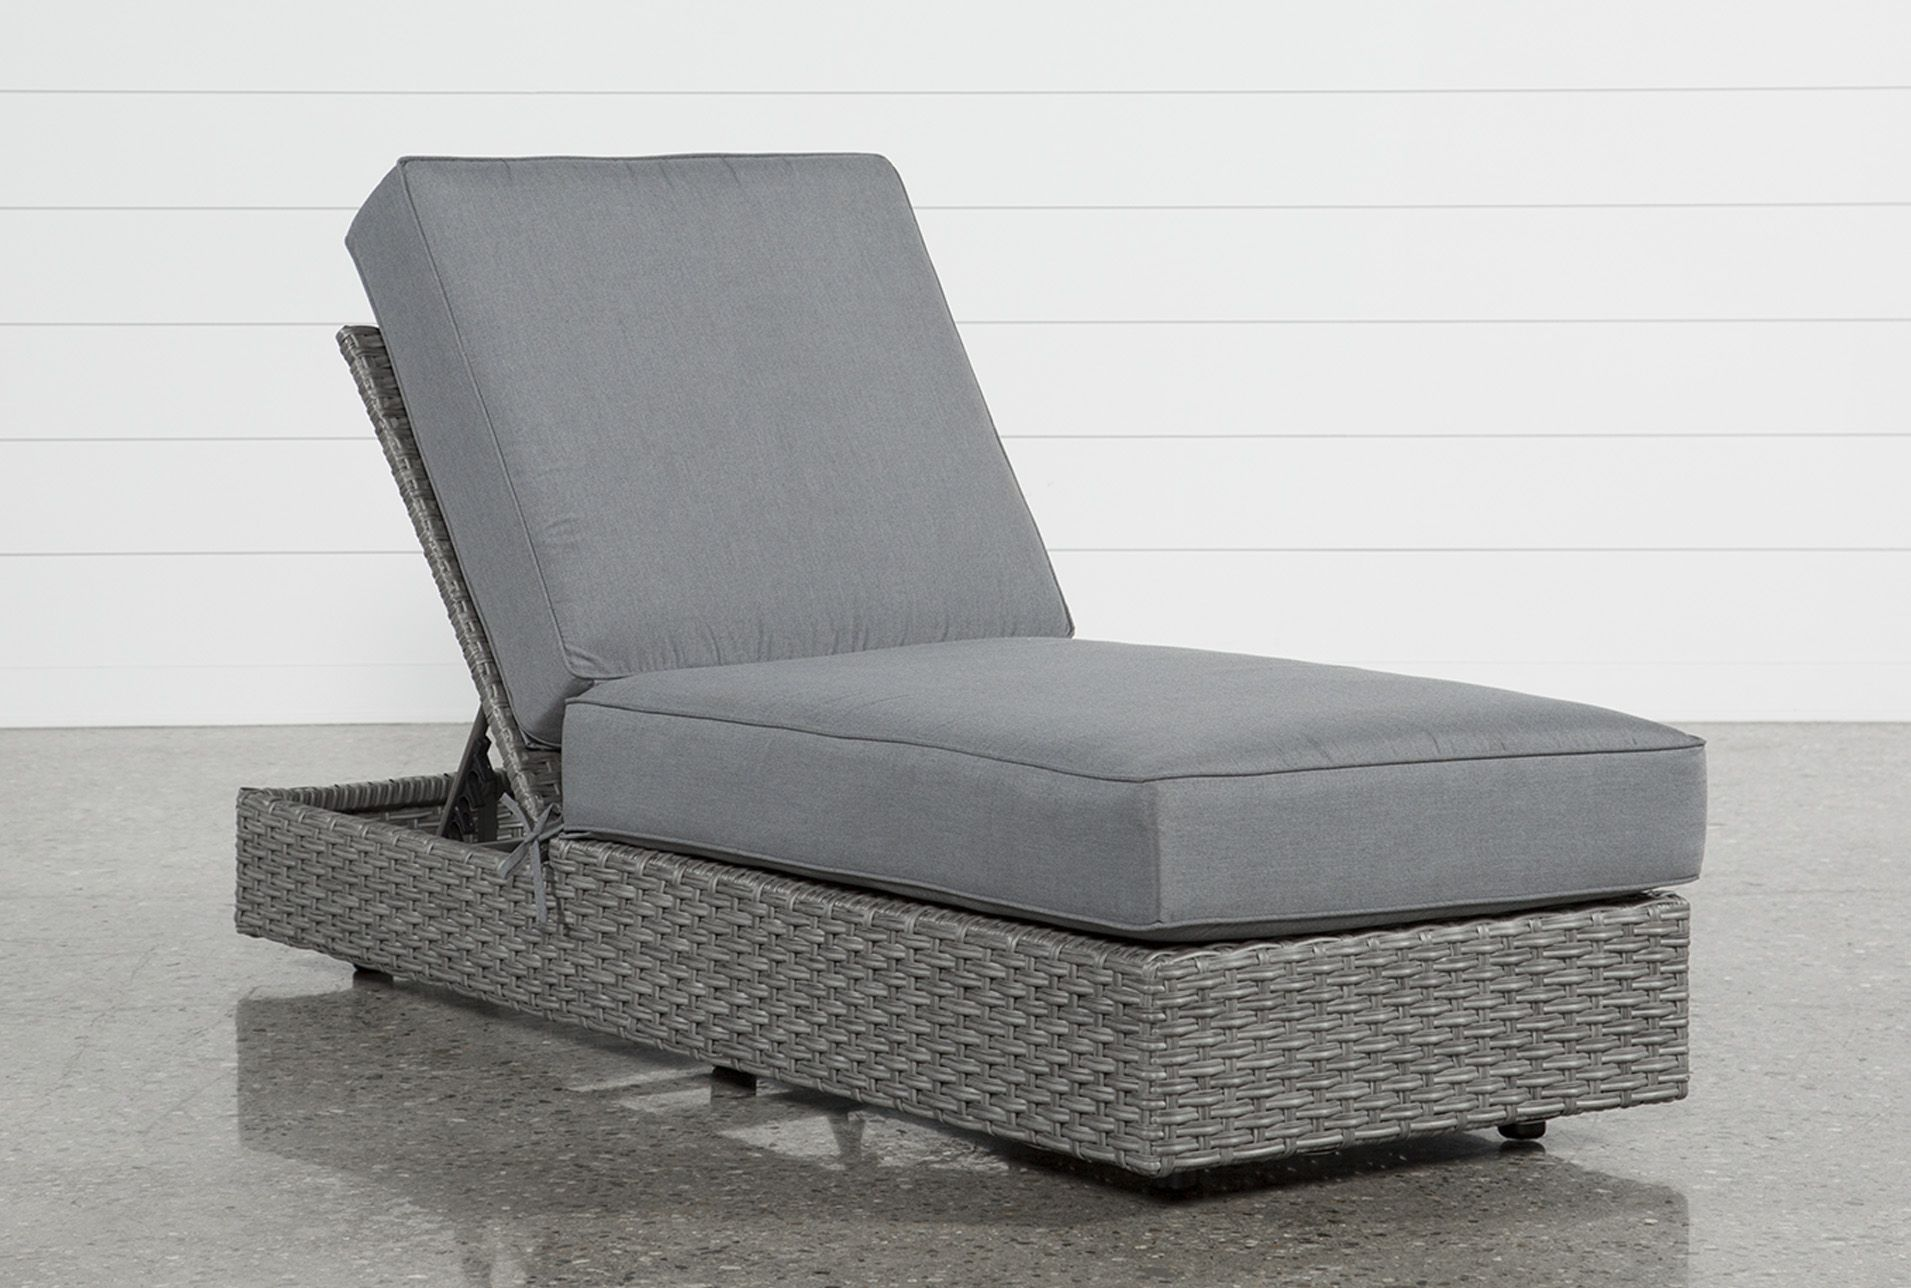 - Koro Outdoor Chaise Lounge Outdoor Chaise Lounge Chair, Outdoor